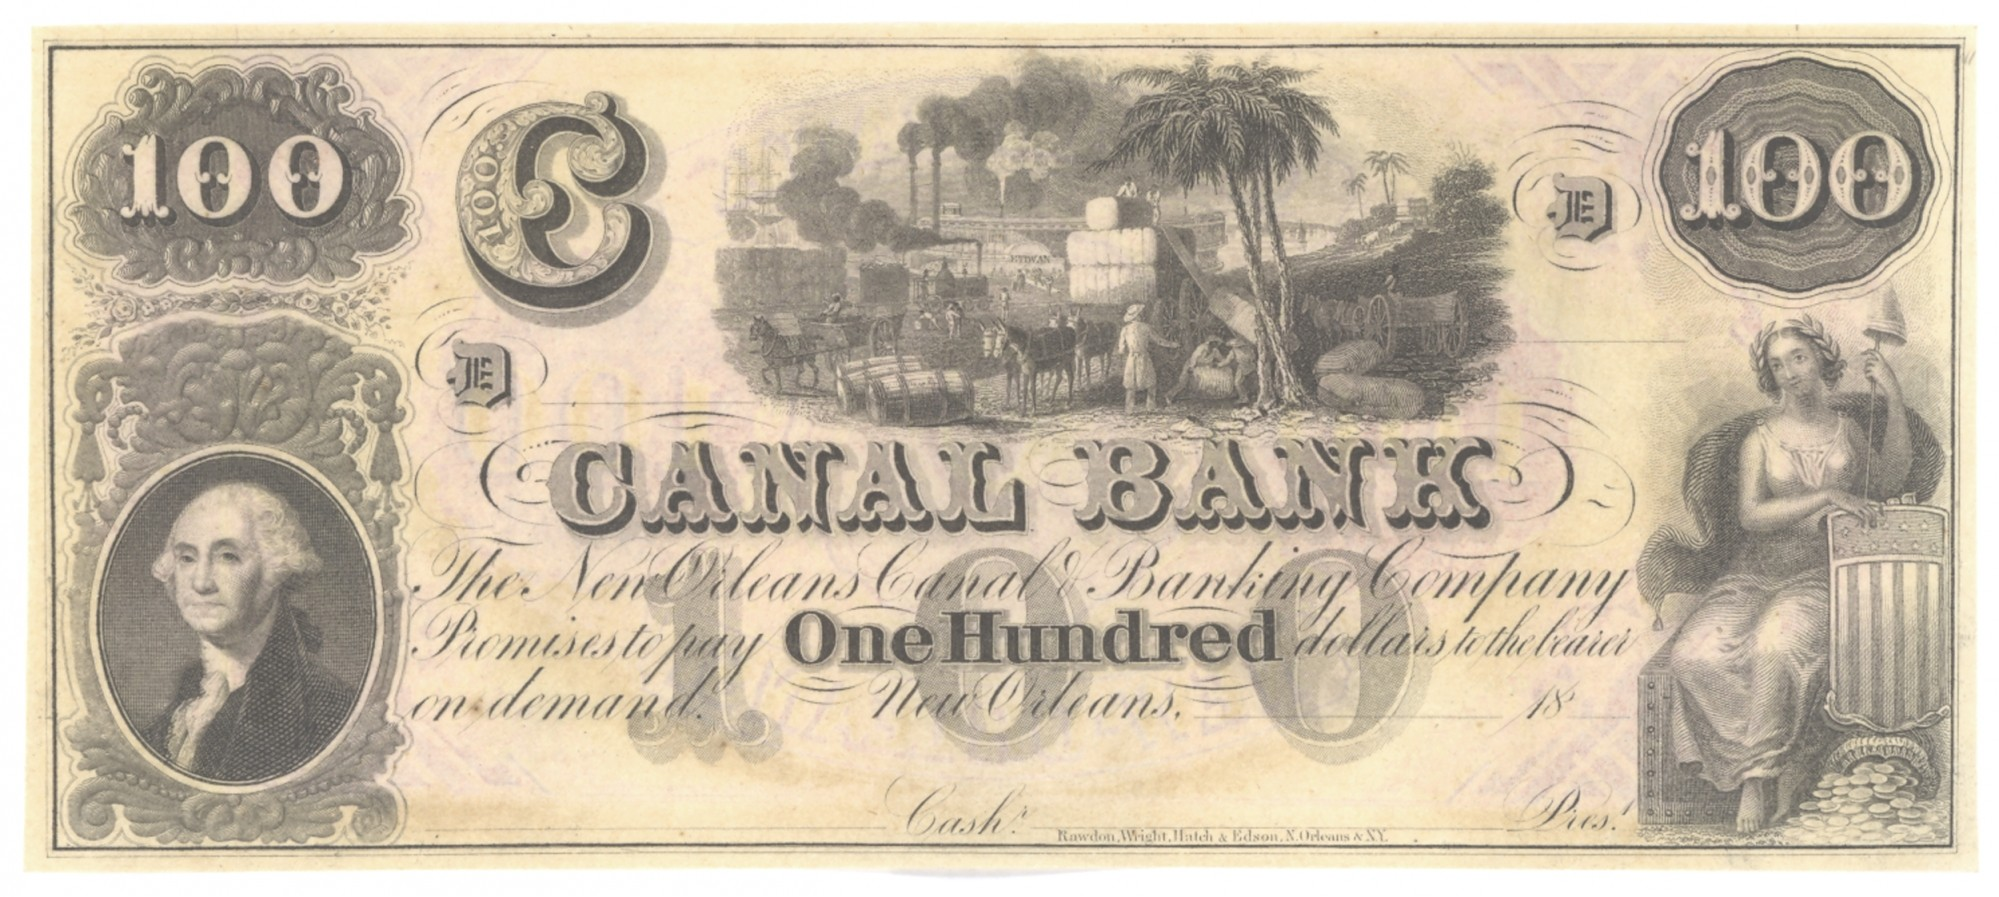 CANAL BANK, LOUSIANA, $100 NOTE